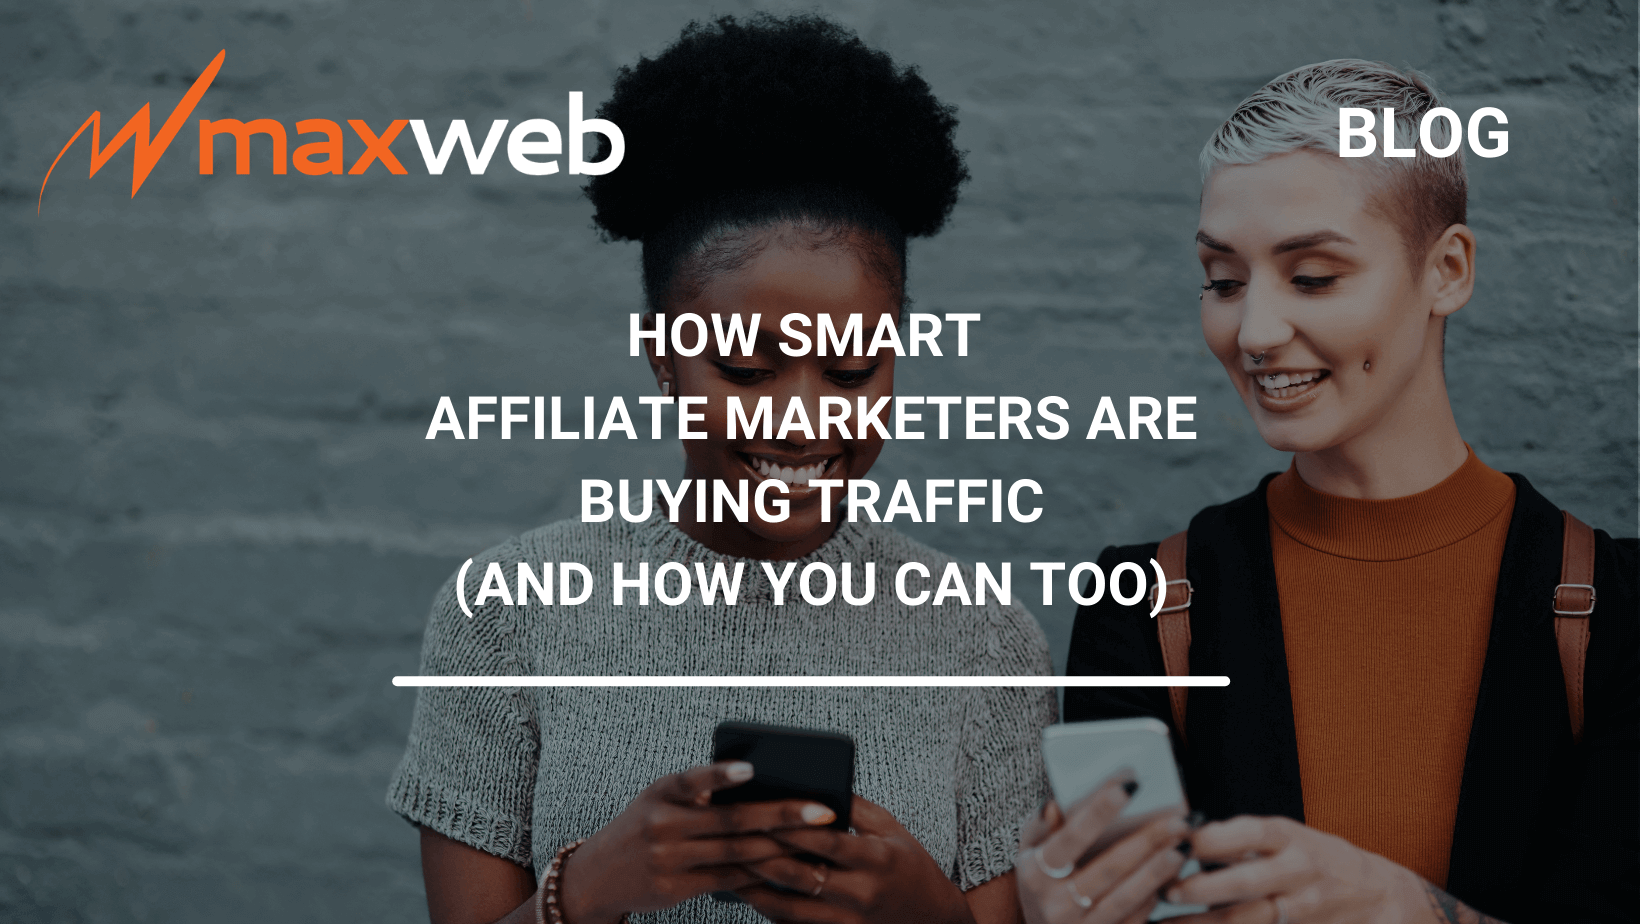 How Smart Affiliate Marketers Are Buying Traffic (And How You Can Capitalize On It)